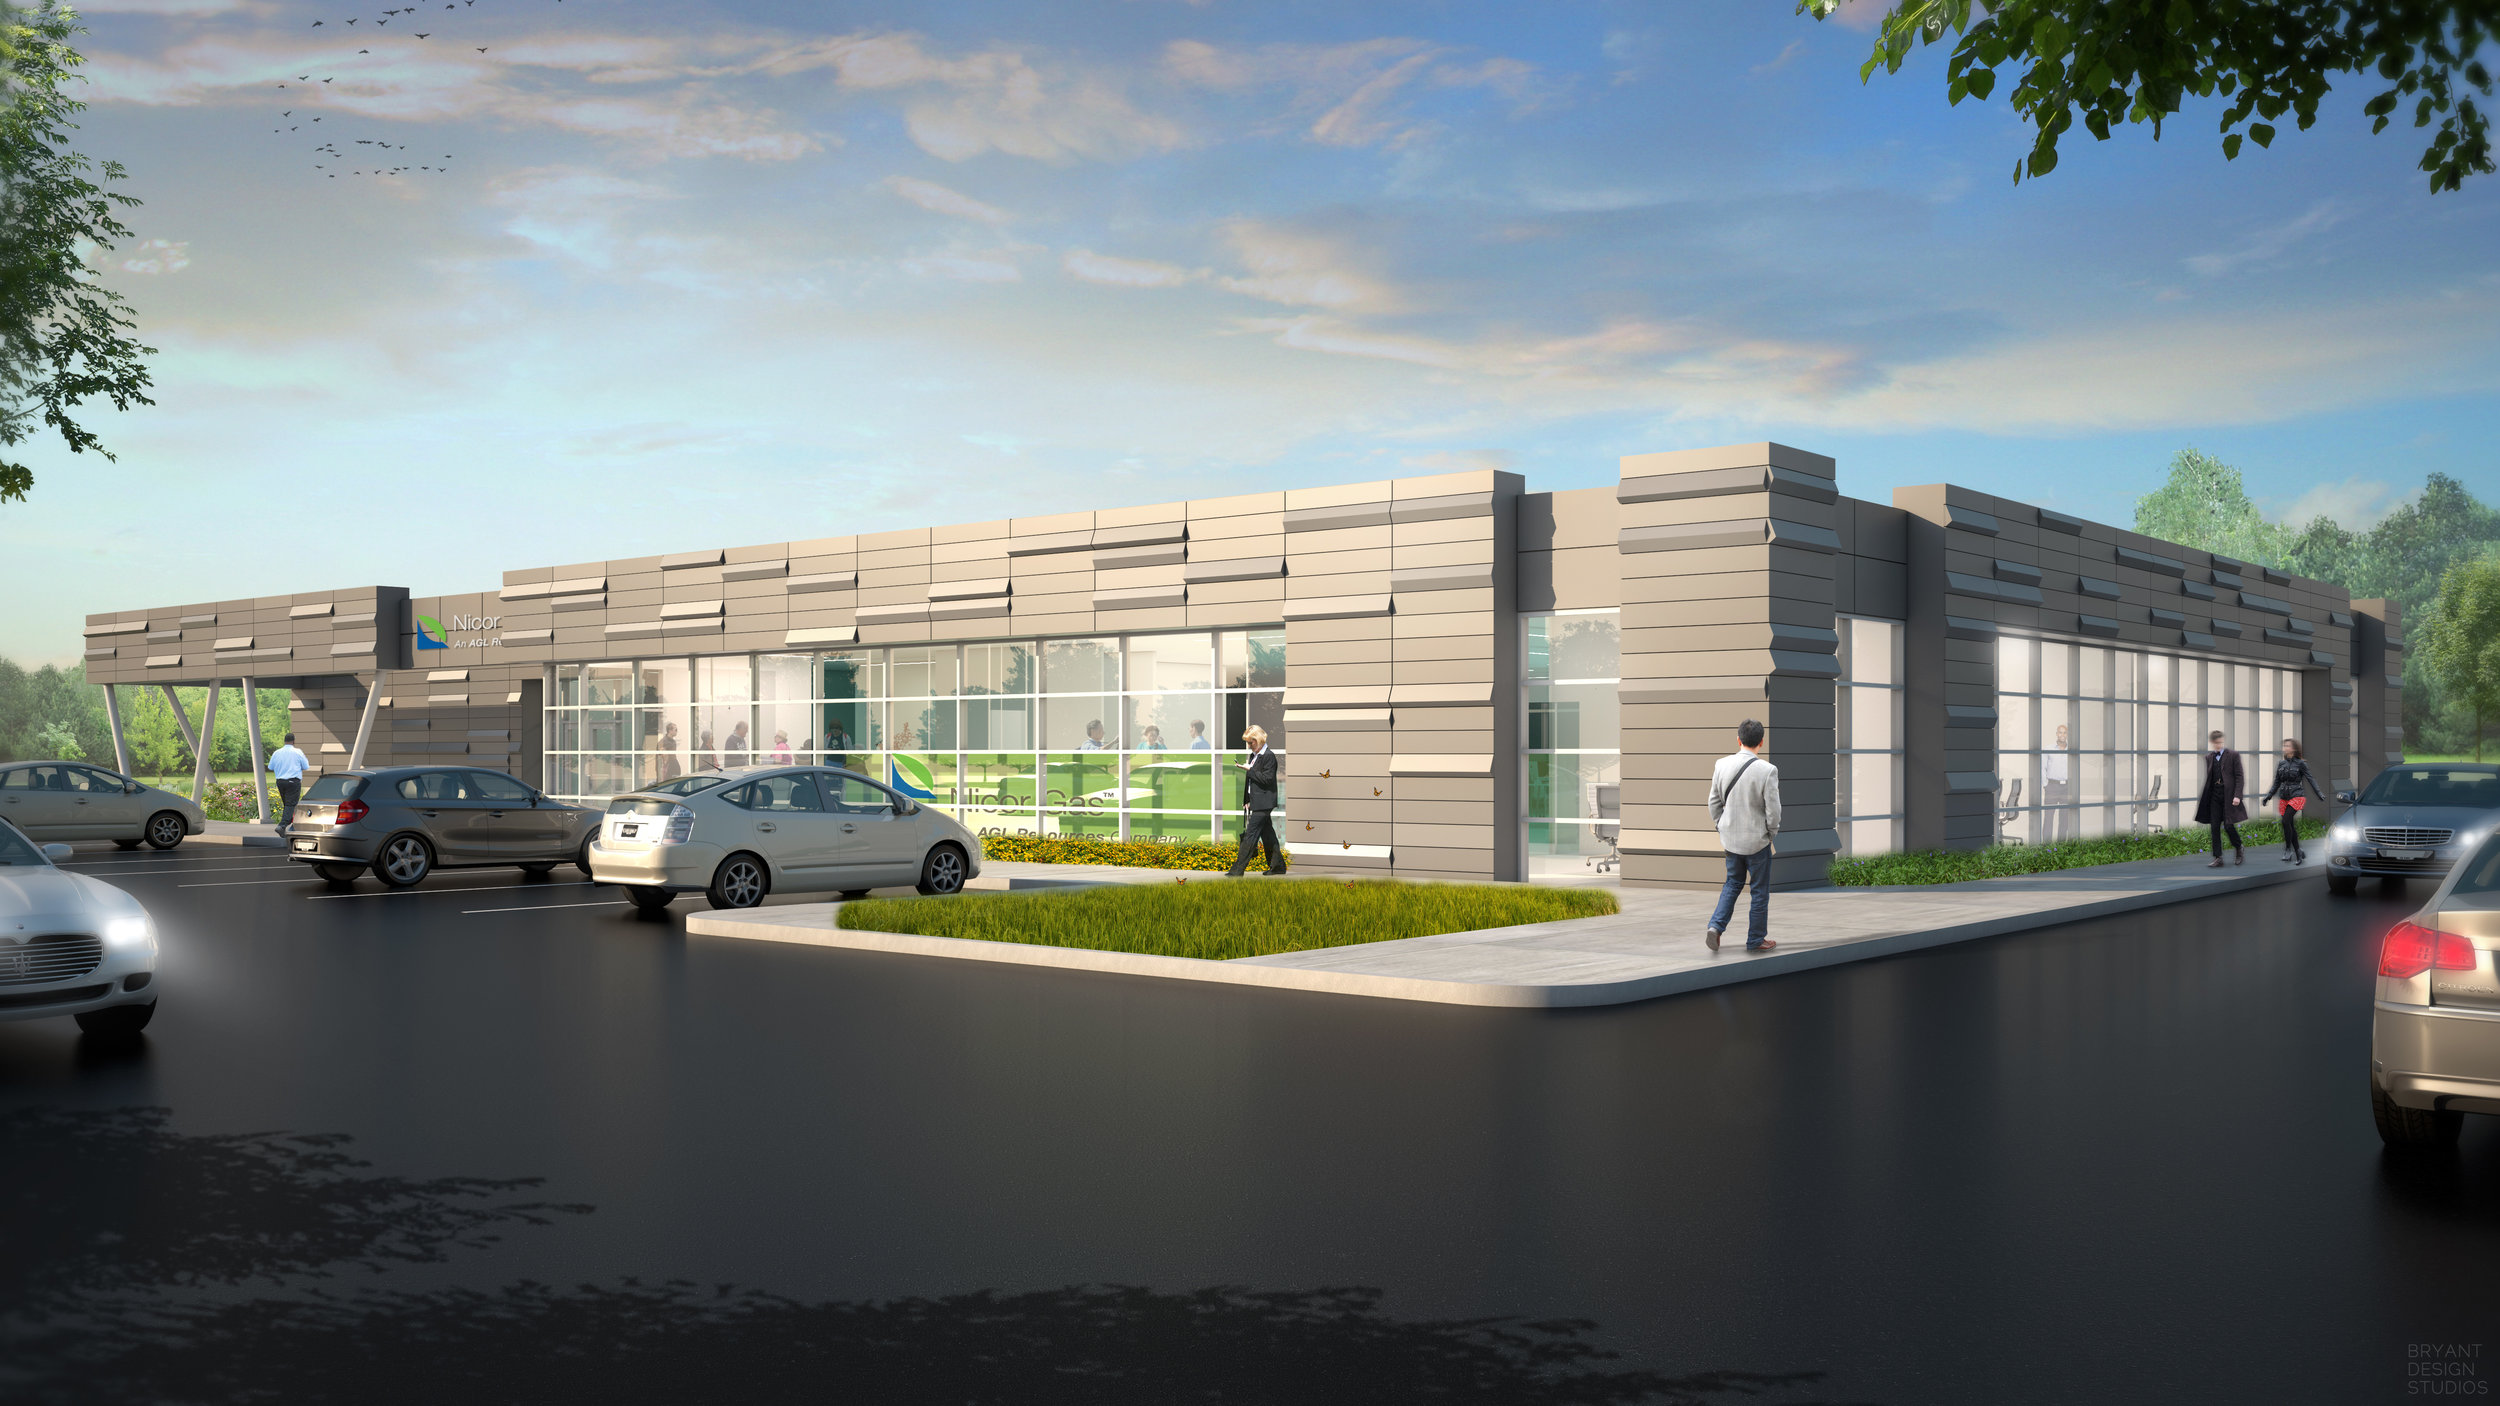 AGL Naperville - New 40,000 SF corporate office & training center. This new metal & glass building will serve as the signature building will serve as the signature building for the redevelopment of Nicor Gas Company's building redevelopment program.